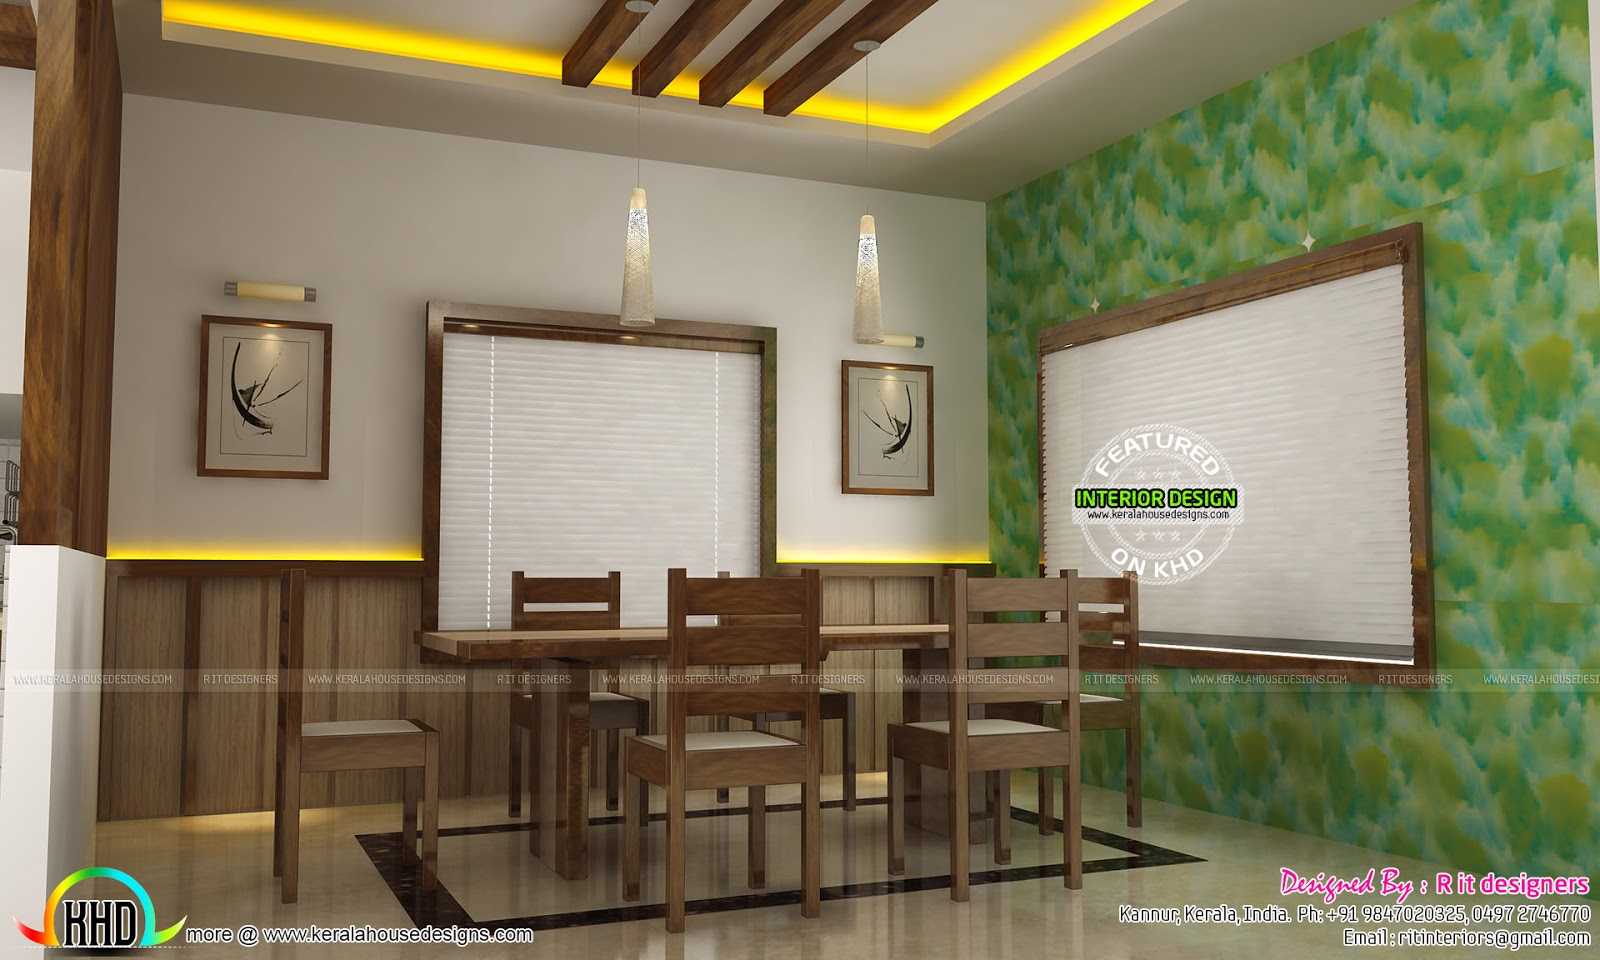 Living Room Designs Kerala Homes dining, kitchen, living room interior designs - kerala home design